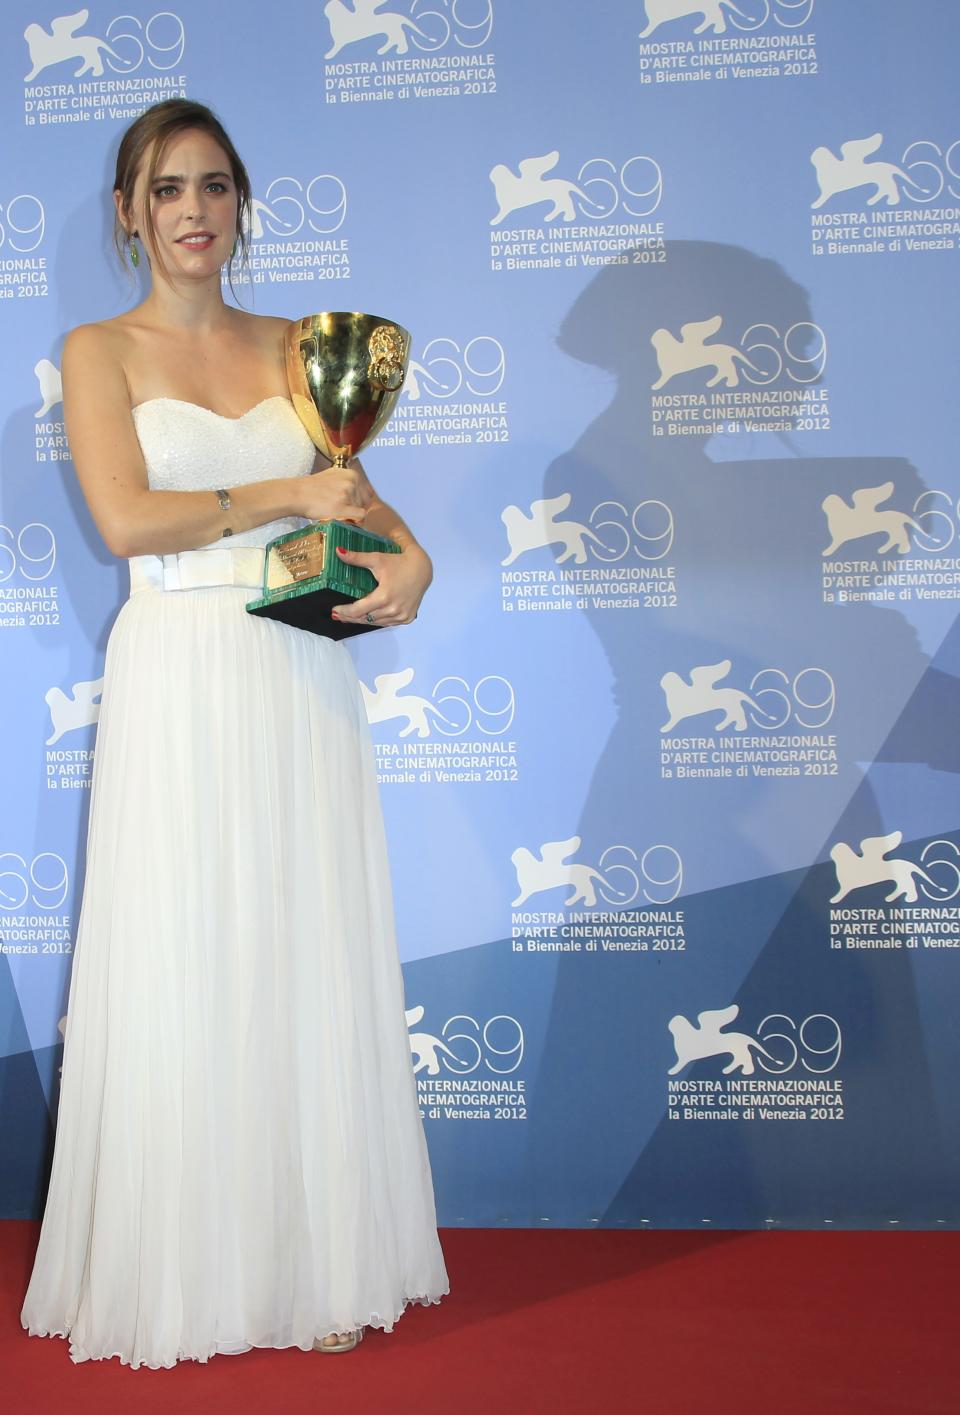 Actress Hadas Yaron poses with the Coppa Volpi for best actress for her role in the movie 'Lemale Et Ha'Chalal' at the awards photo call during the 69th edition of the Venice Film Festival in Venice, Italy, Saturday, Sept. 8, 2012. (AP Photo/Joel Ryan)